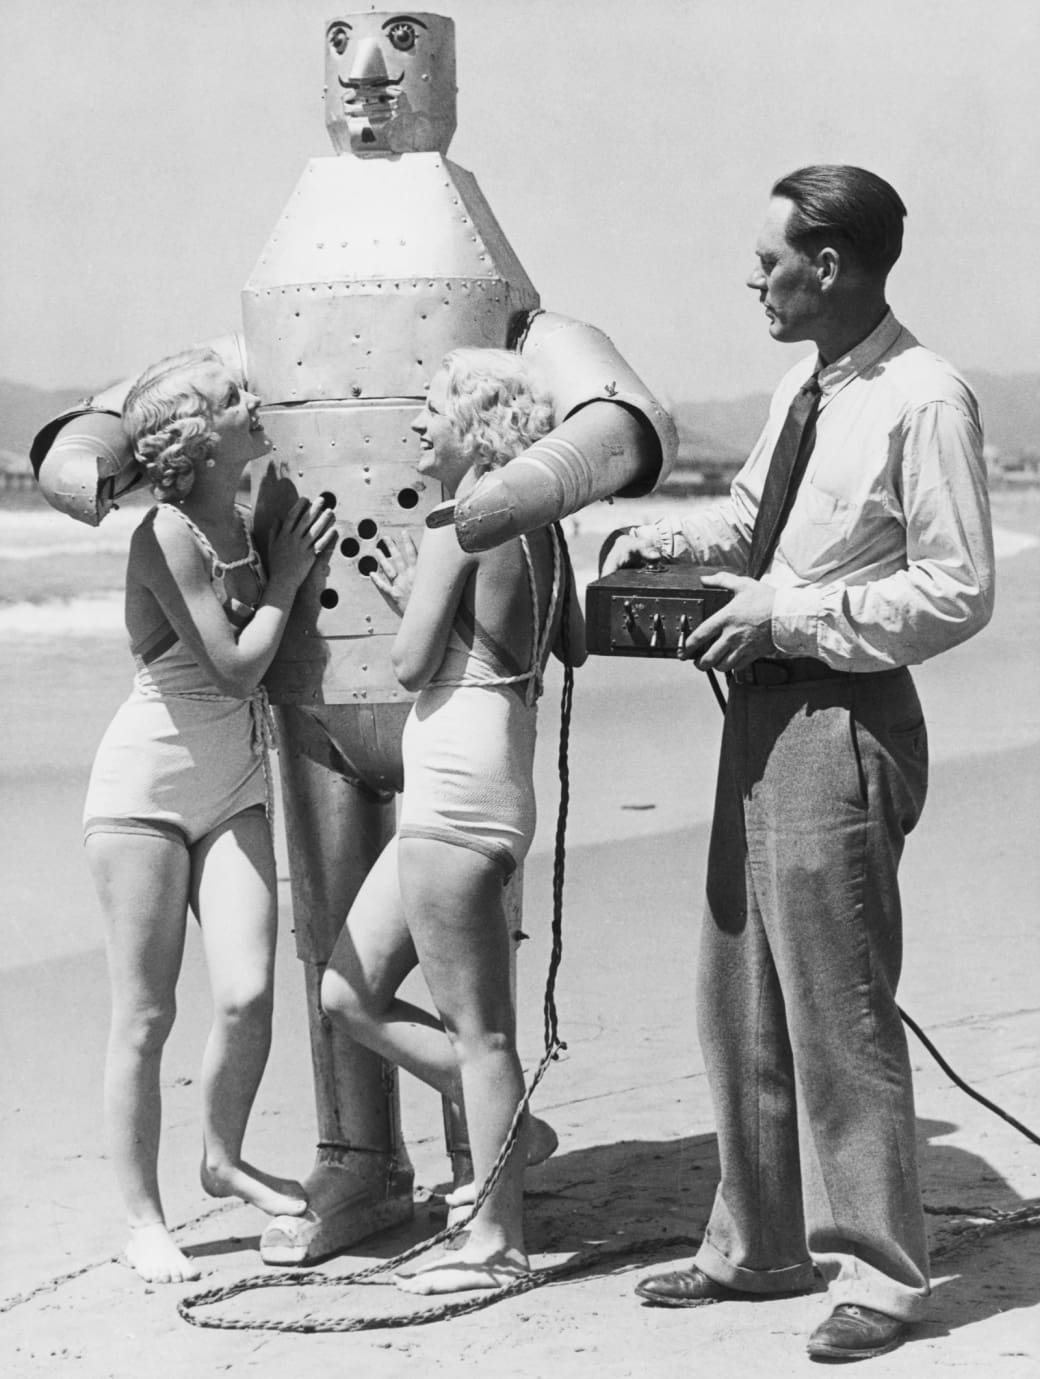 3. Enjoying the company of super-futuristic beach robots, 1934: